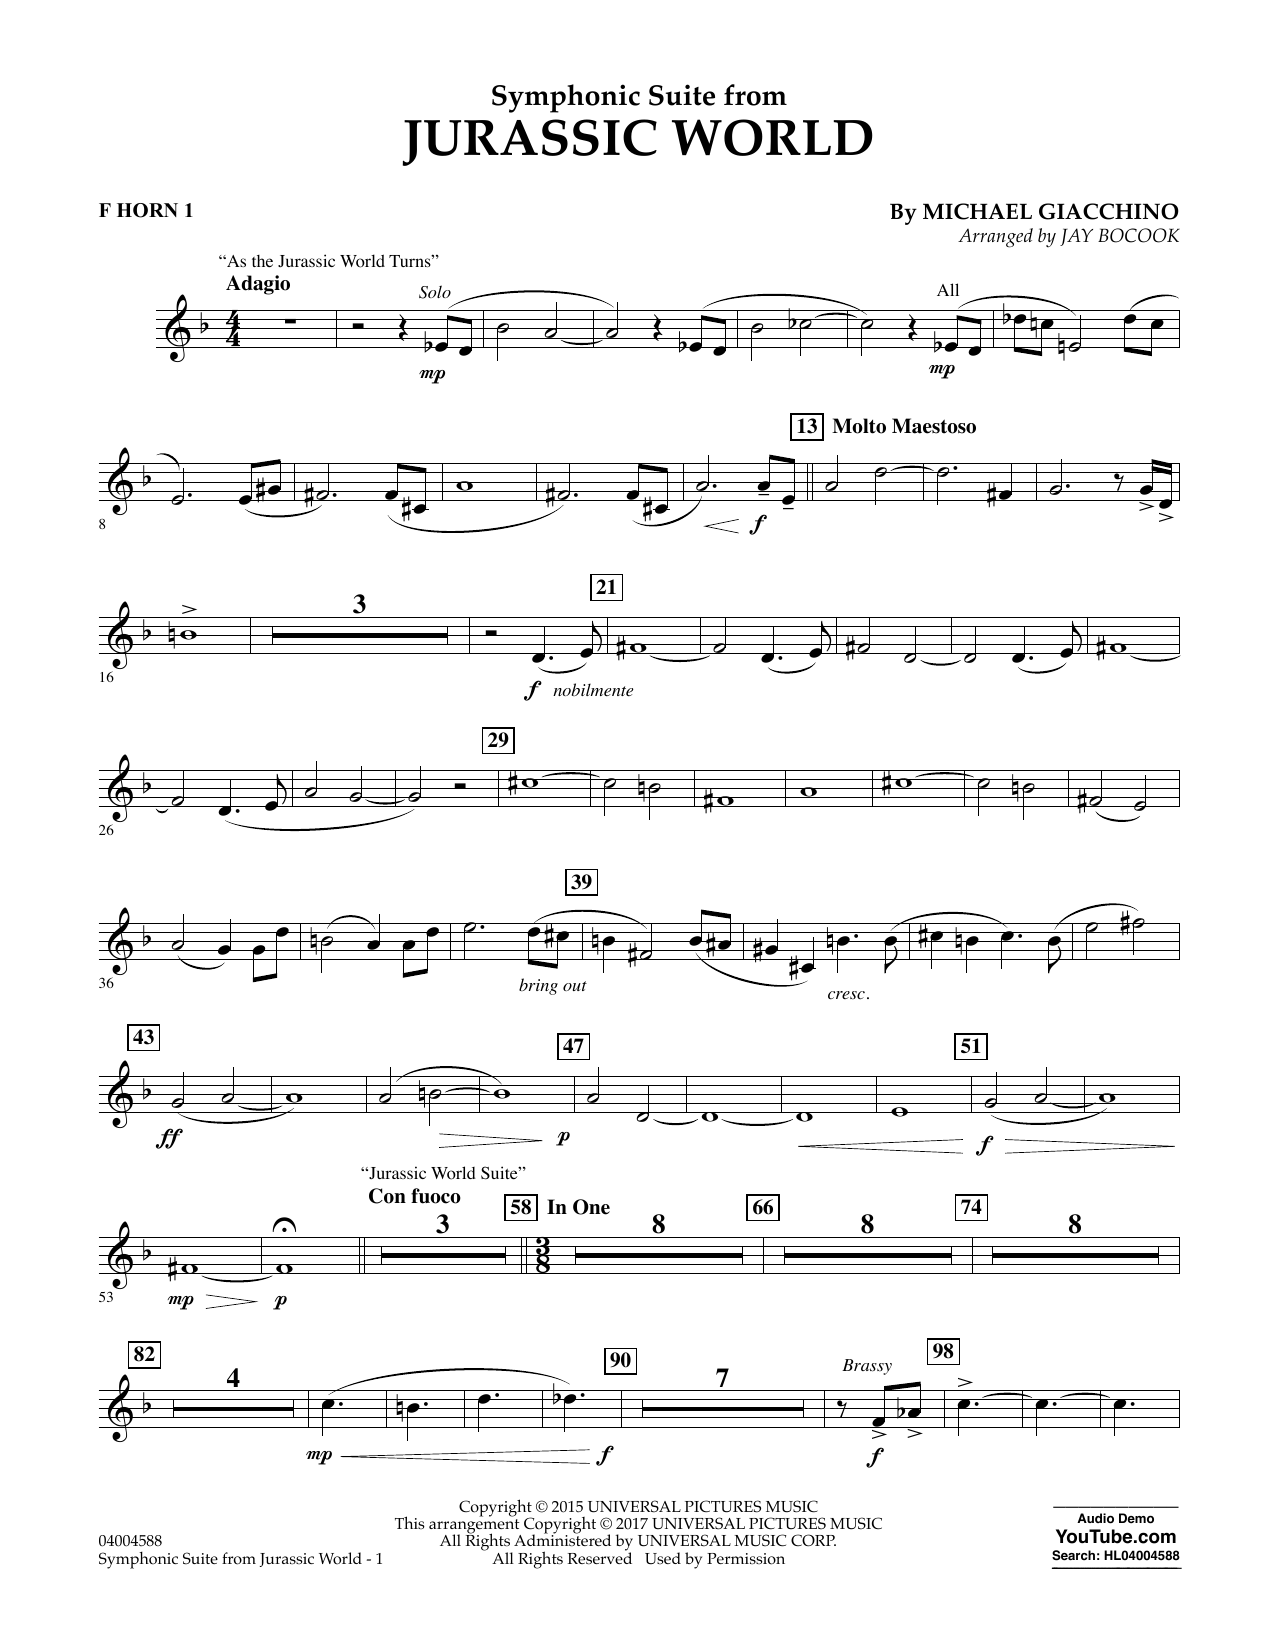 Jurassic World (Symphonic Suite) - F Horn 1 Sheet Music